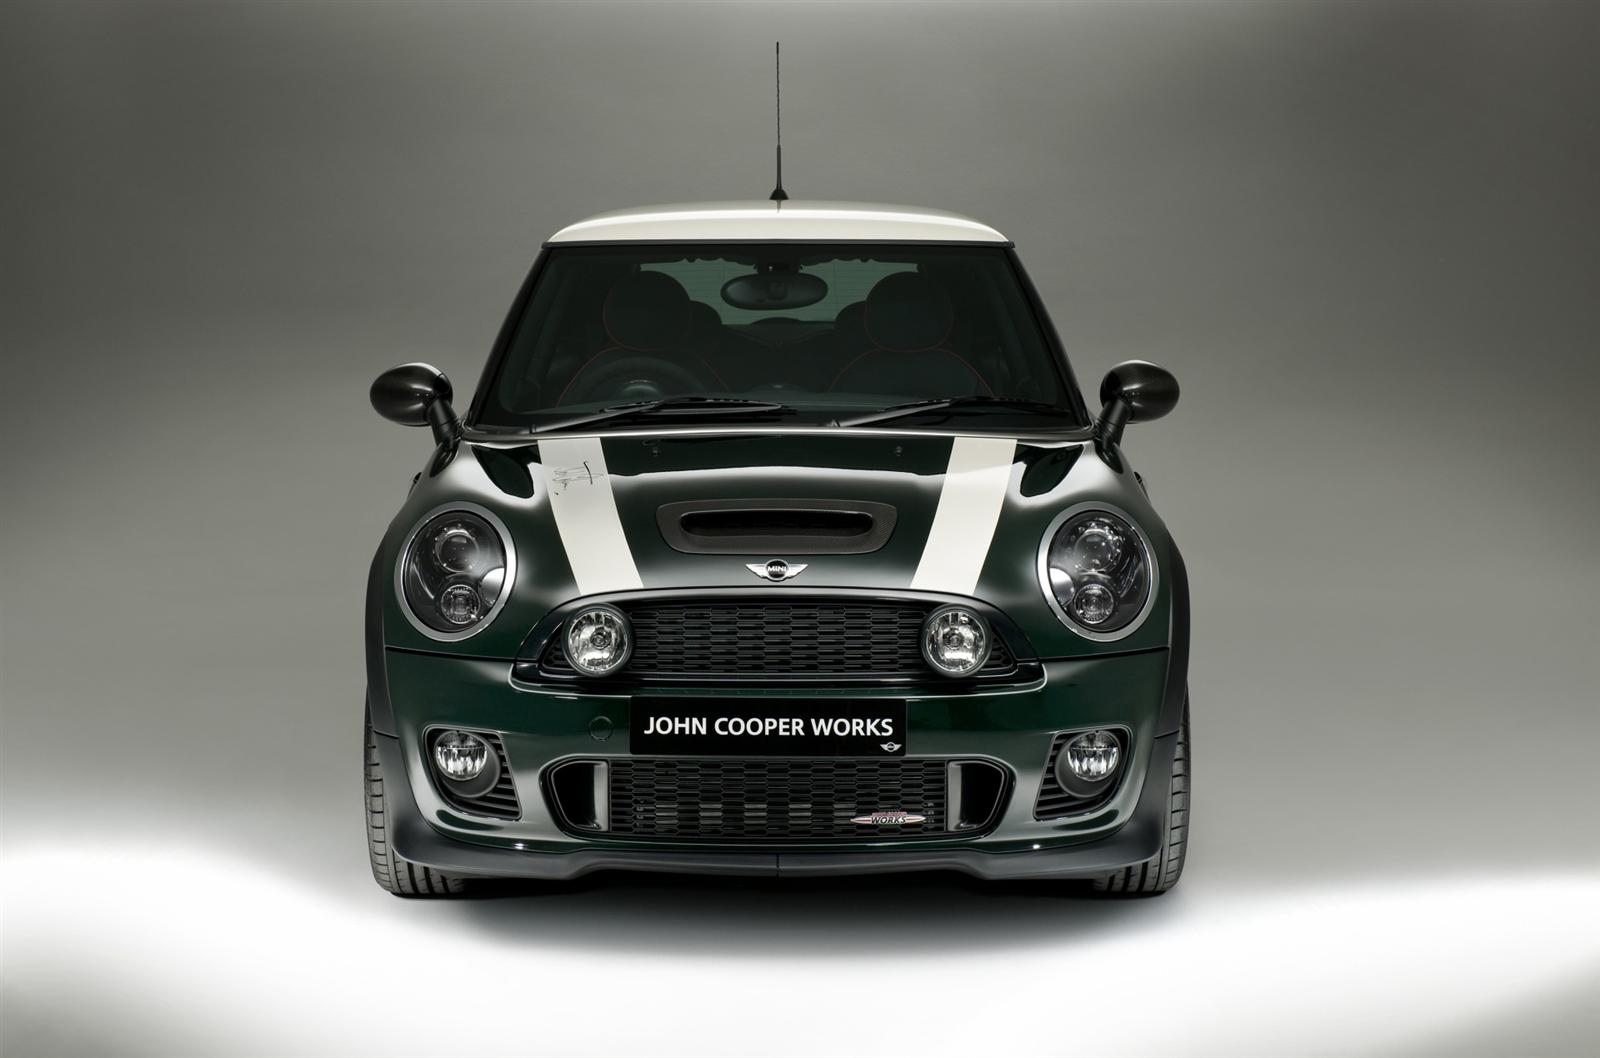 2010 MINI Cooper JCW World Championship 50 Edition